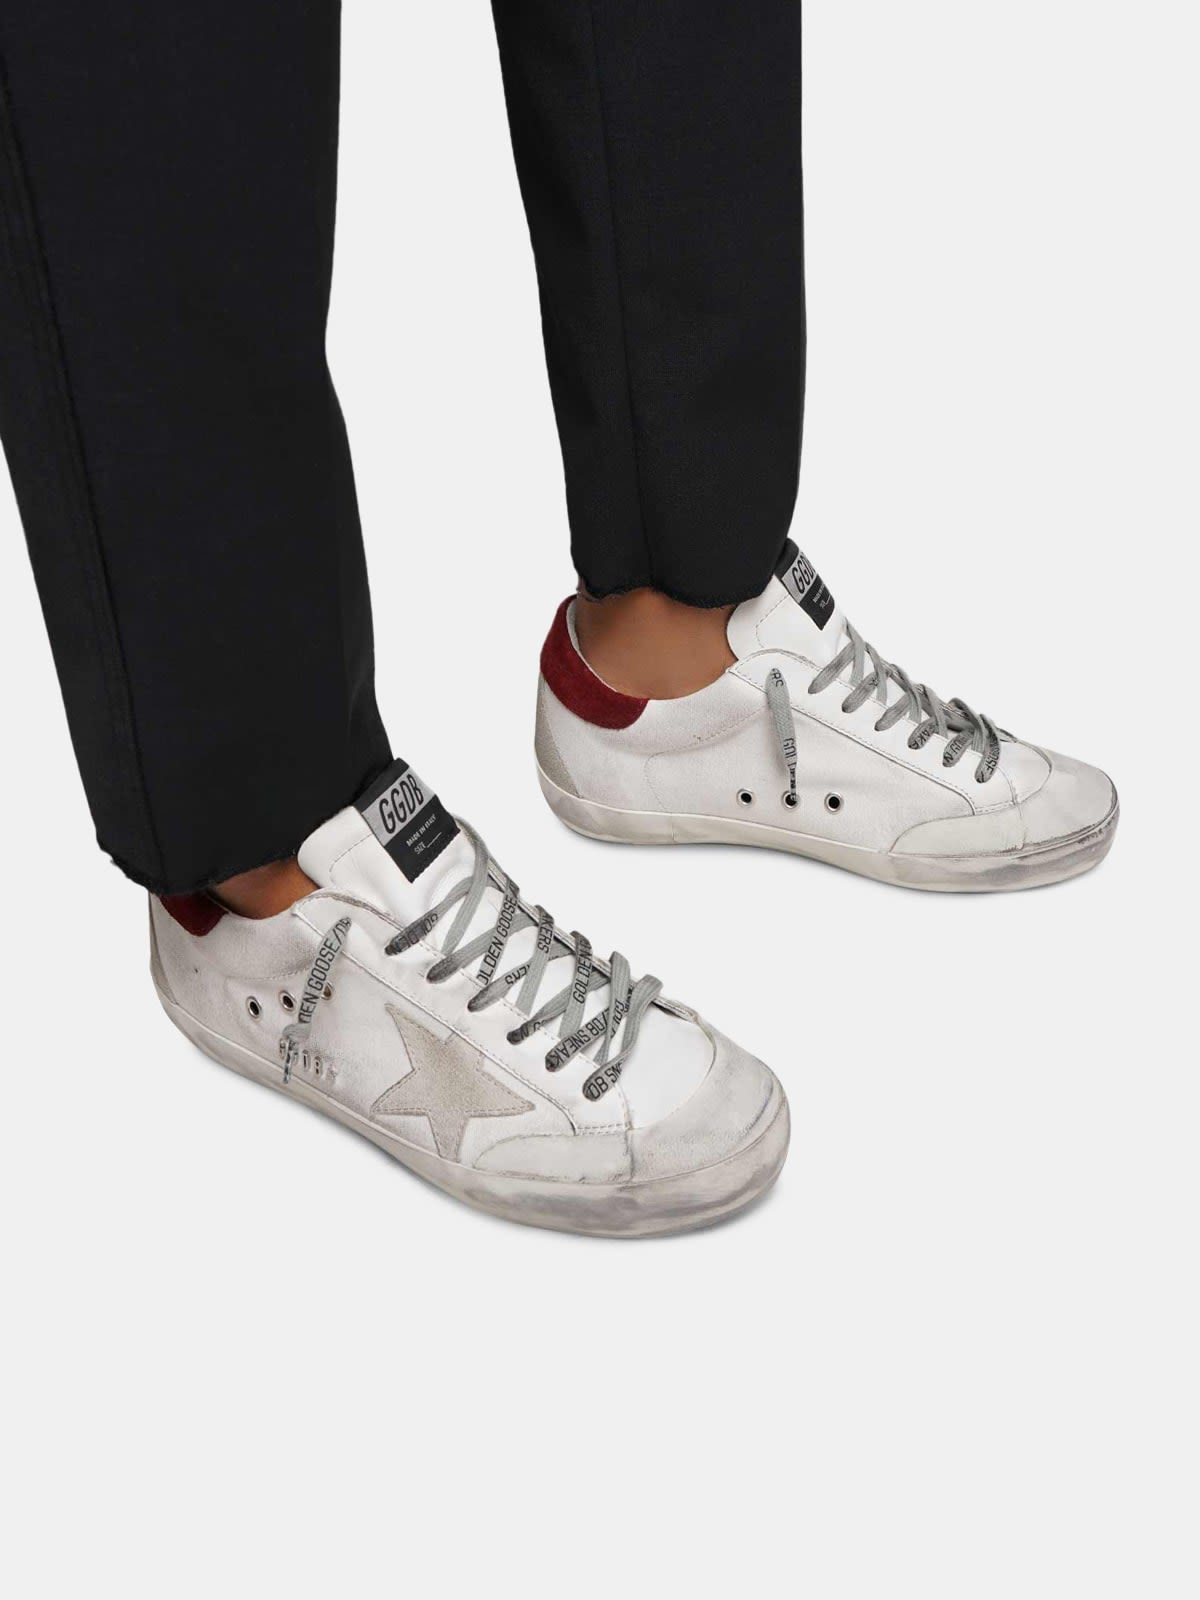 Super-Star sneakers with rubber toe cap